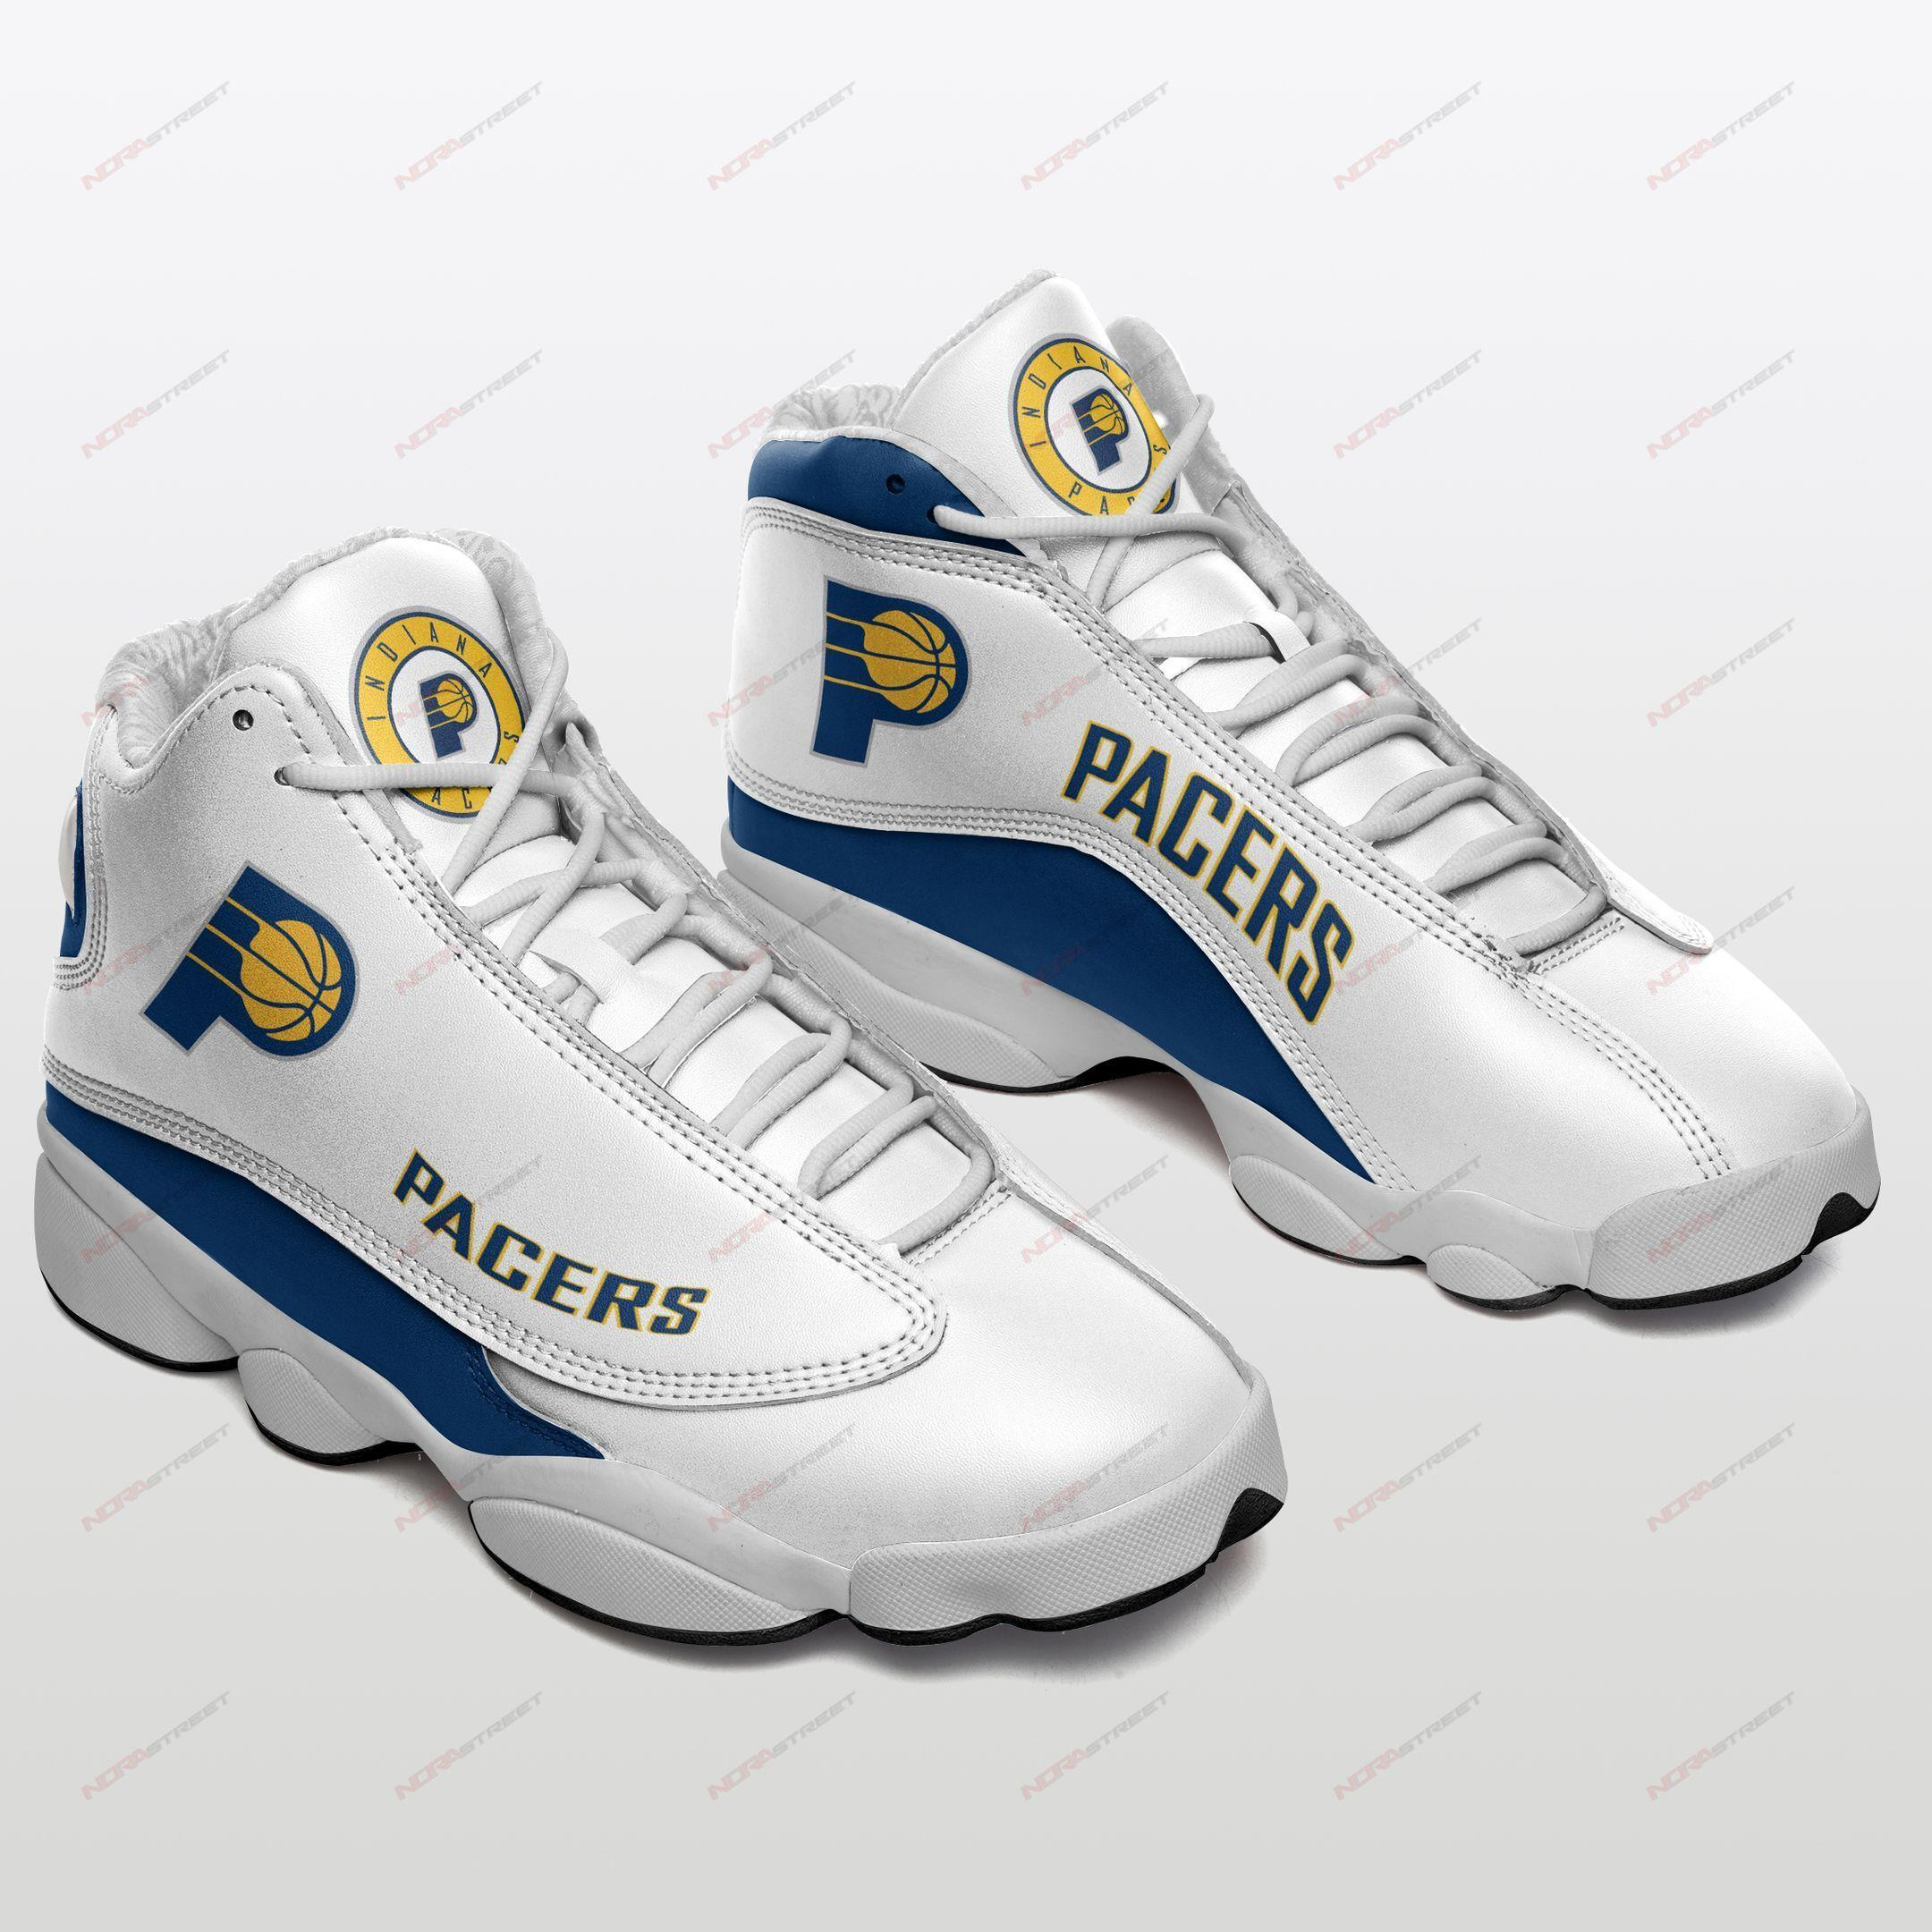 Indiana Pacers Air Jordan 13 Sneakers Sport Shoes